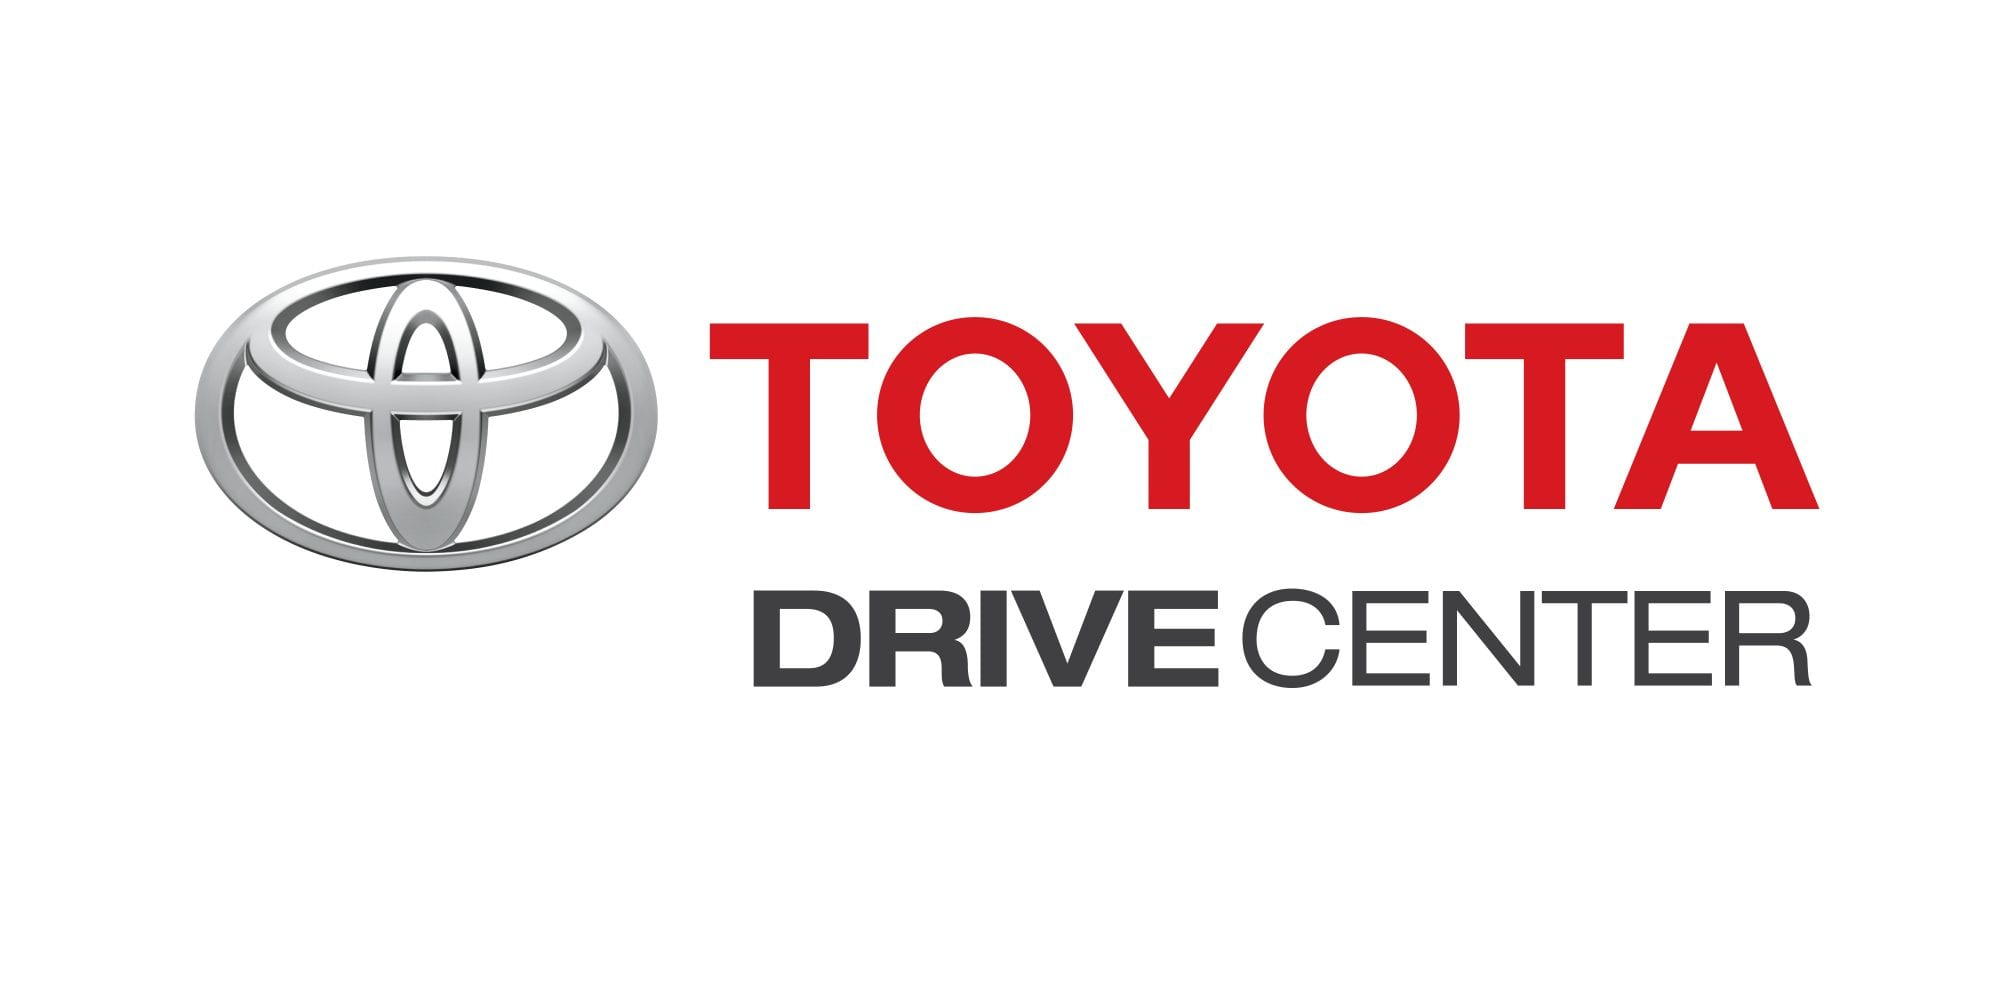 Toyota Drive Center